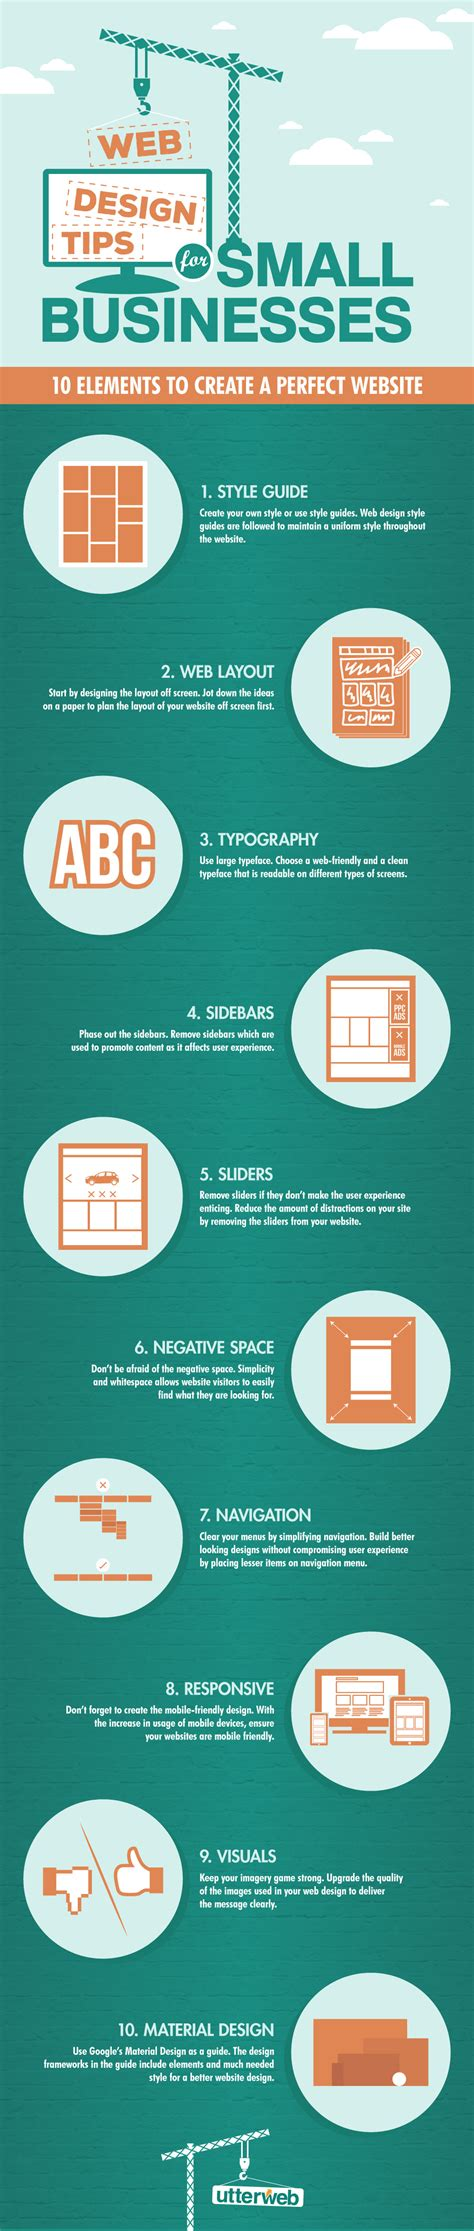 the of small business design a guide to moving from idea to livelihood for the creative curious and strapped books infographic web design tips for small businesses